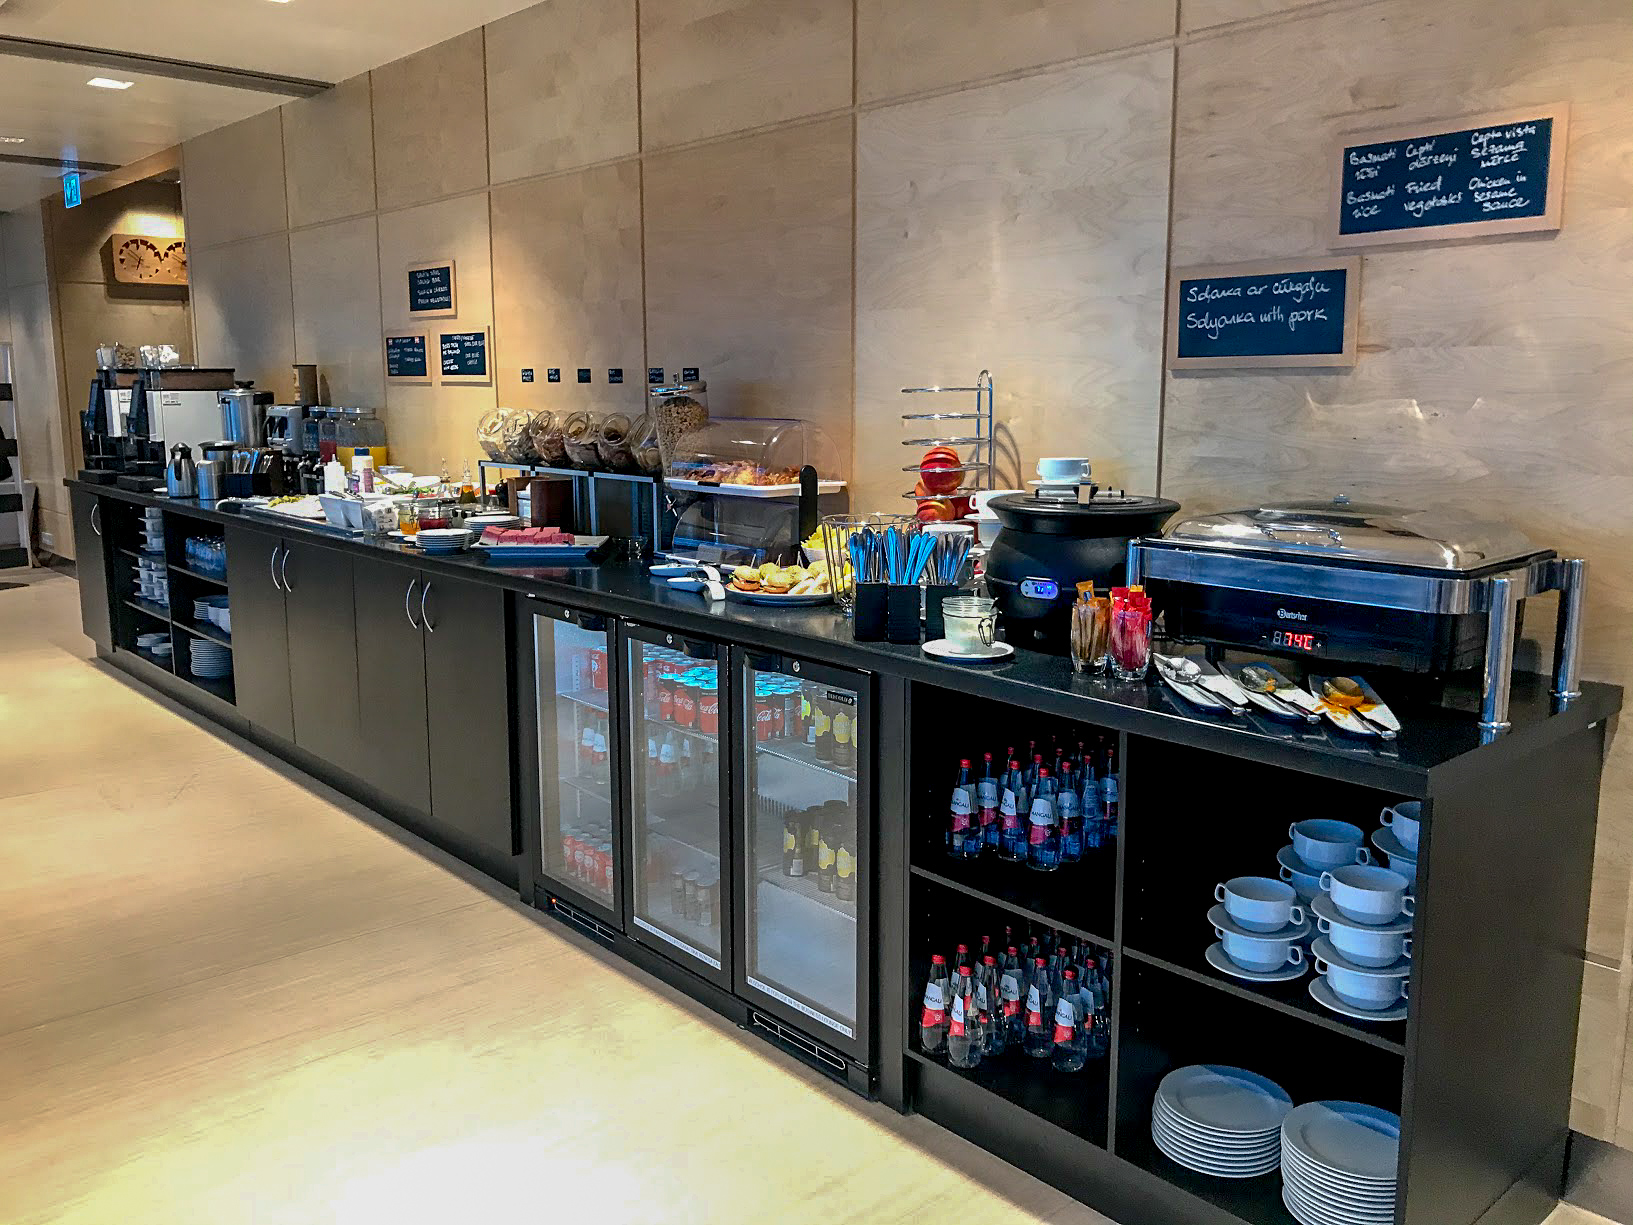 Food and drinks counter in the Primeclass Business Lounge at Riga International Airport